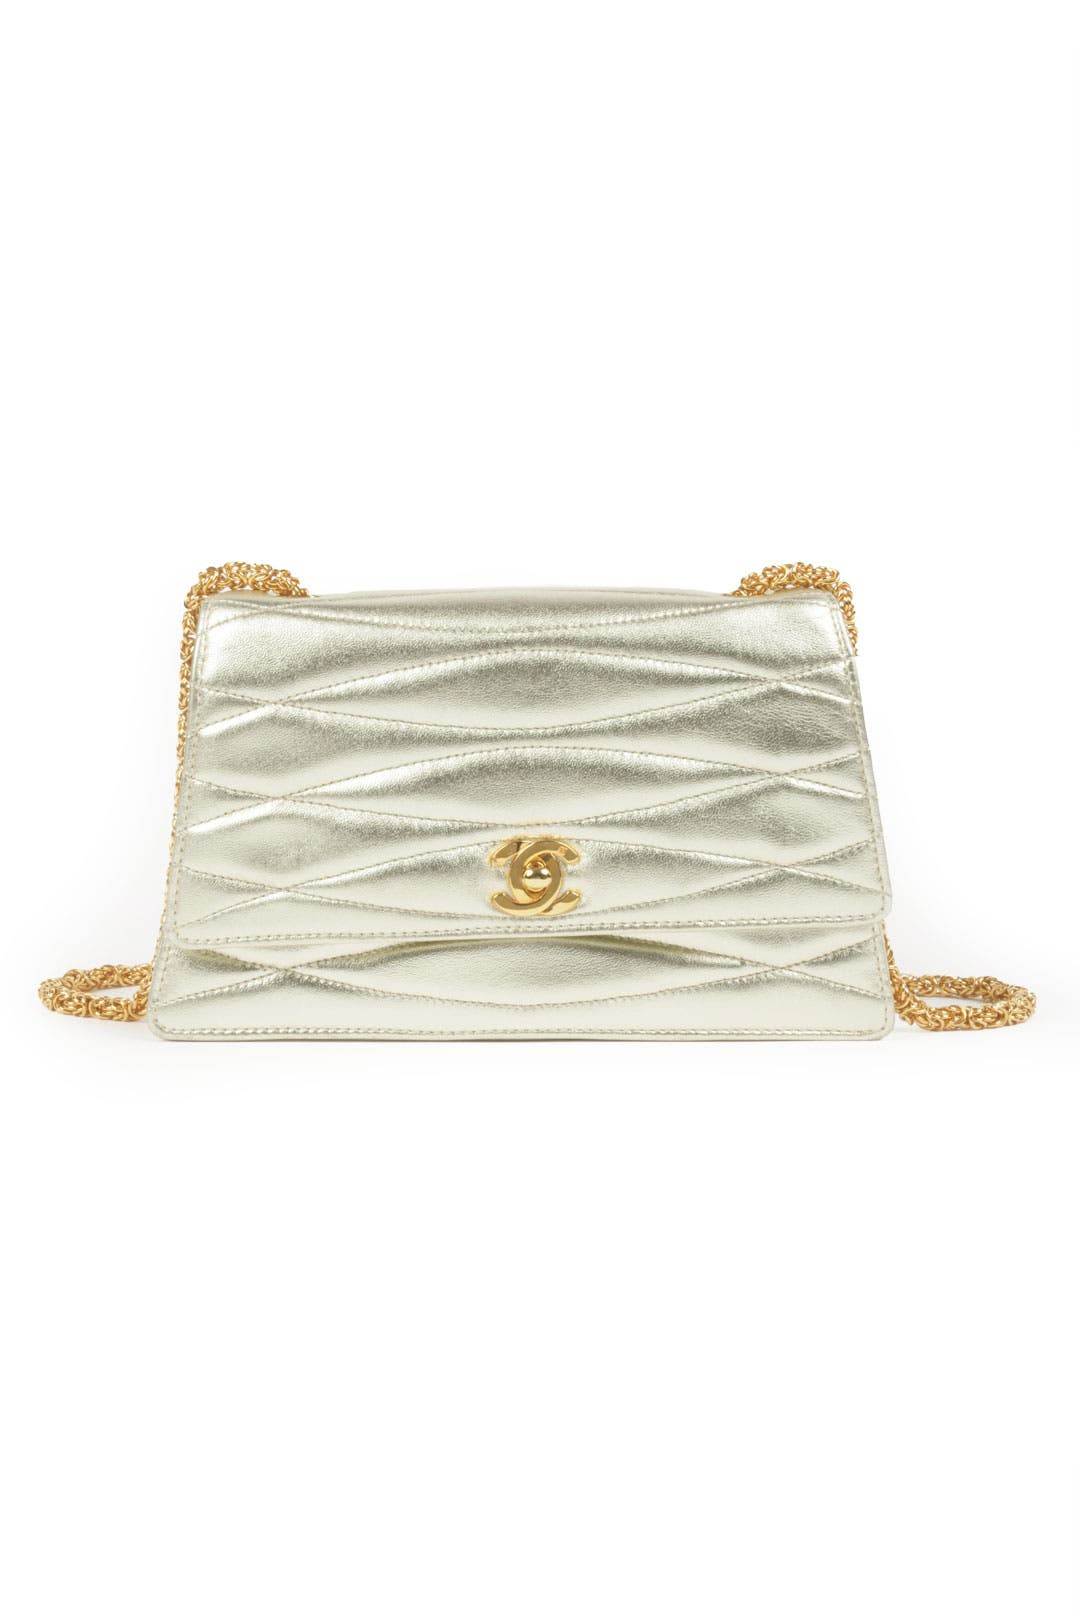 Vintage Chanel Gold Wave Mademoiselle Bag by WGACA Vintage